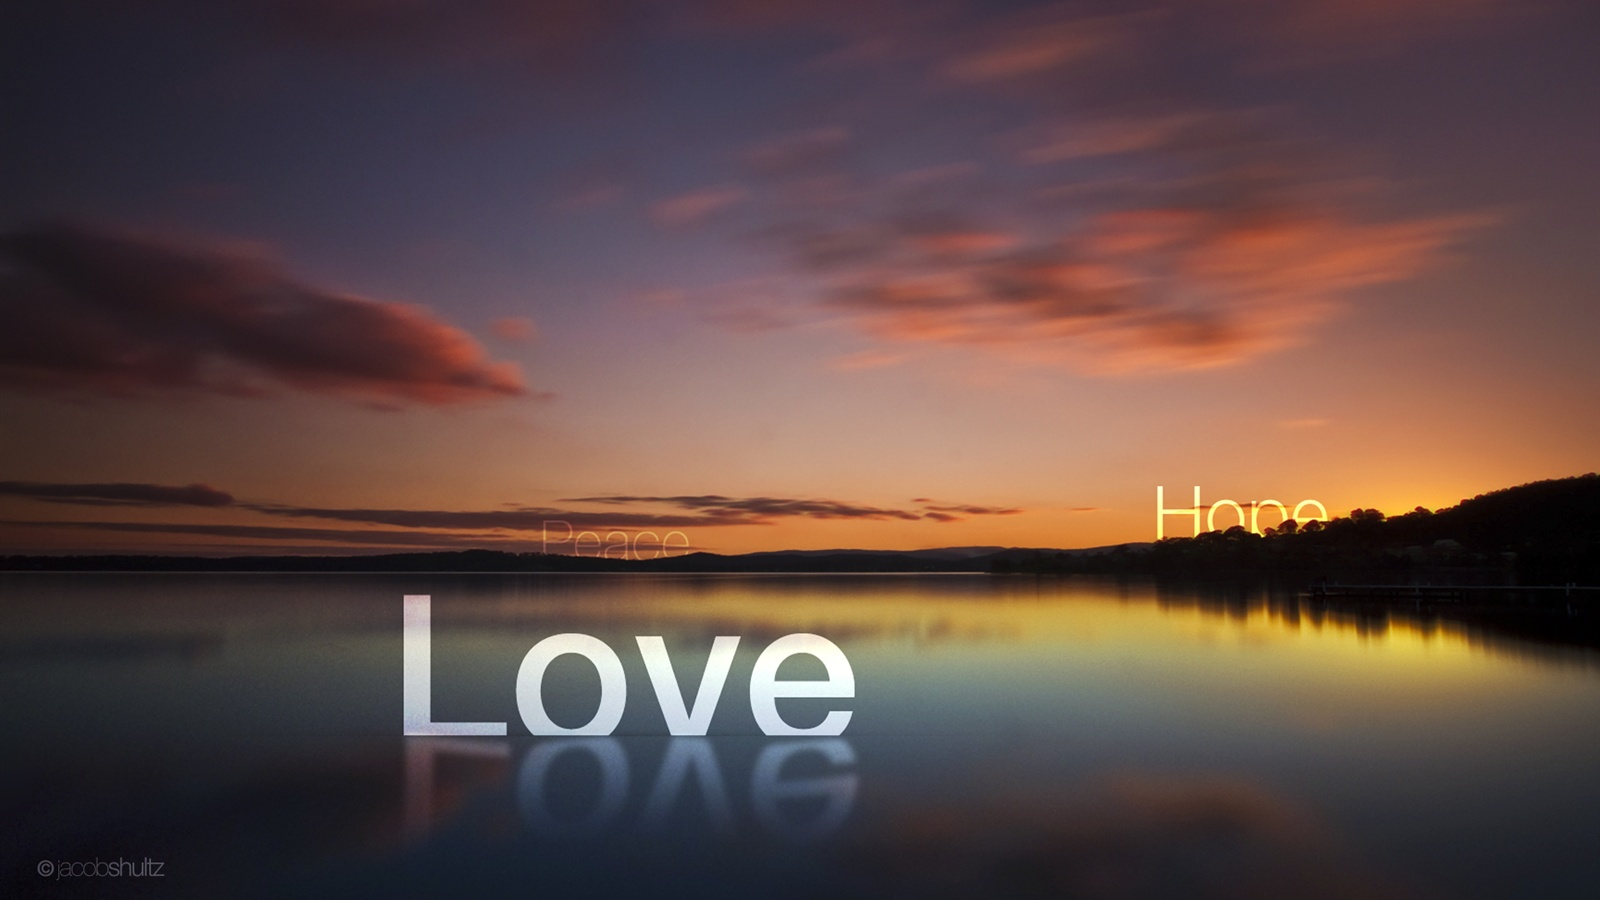 Love peace hope wallpaper - 1600x900